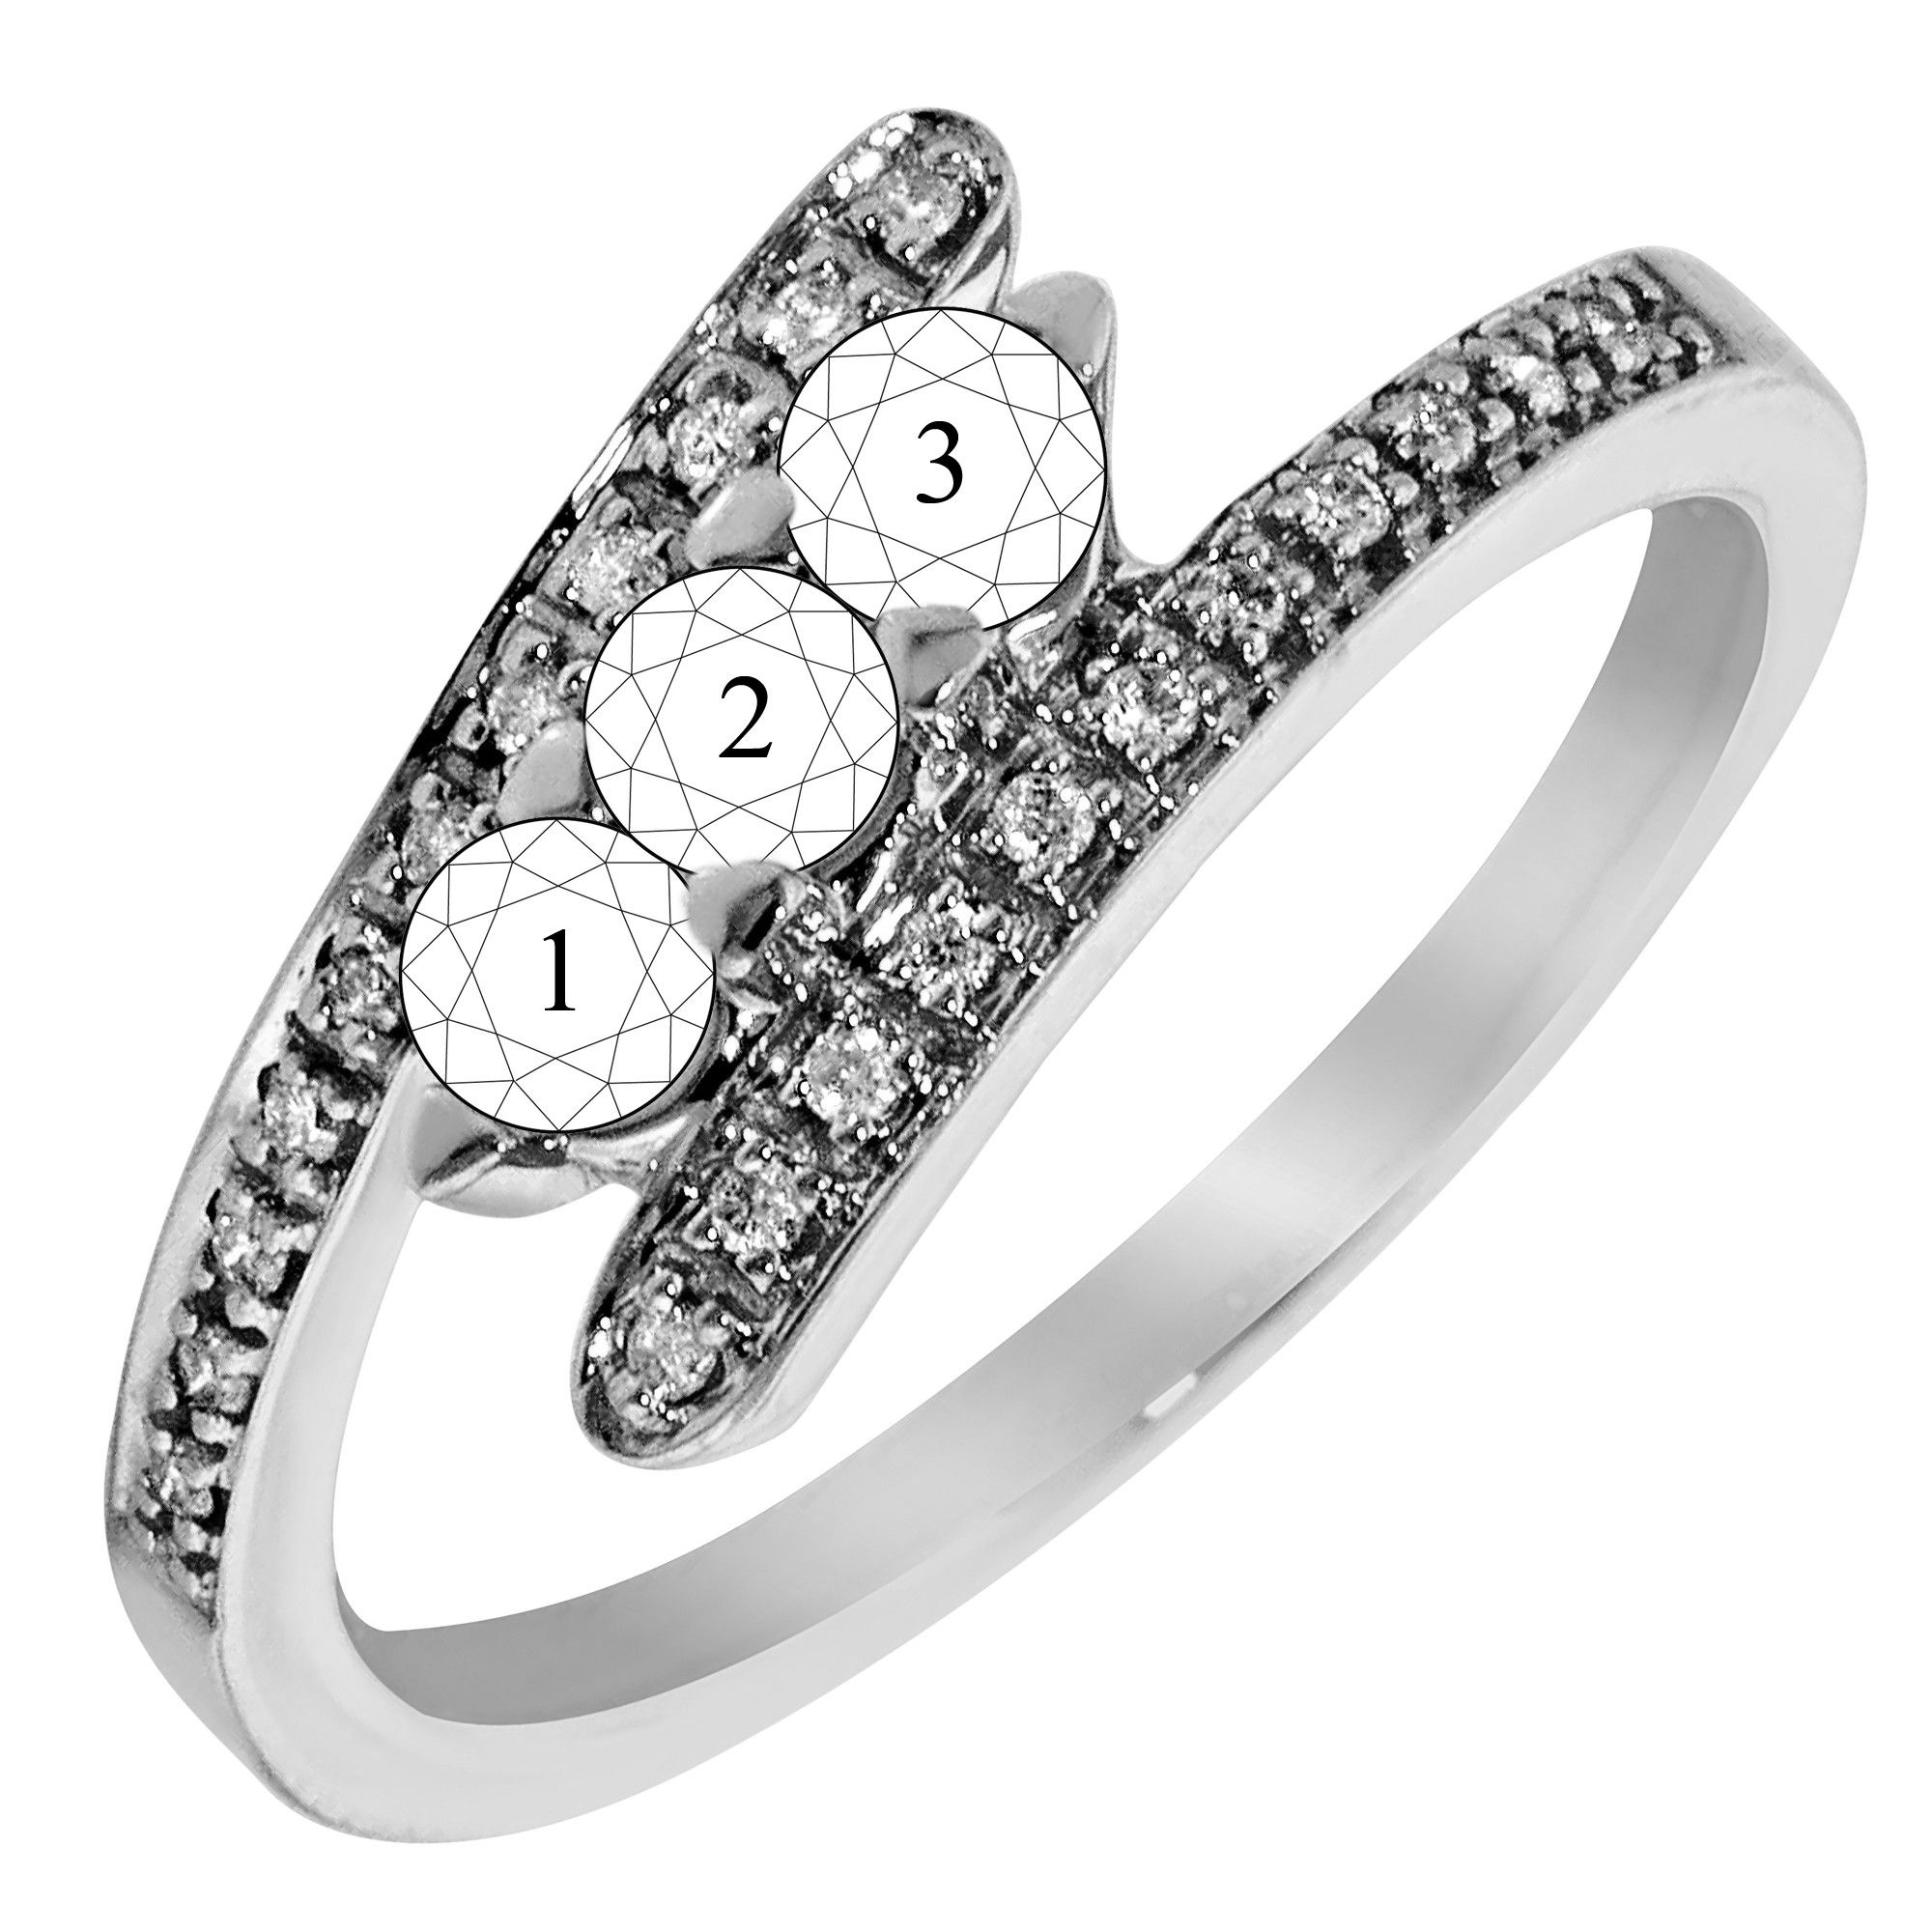 Pinsasha Sanders On Sparkles! In 2019 | Mother Rings Pertaining To Most Recent Diamond Seven Stone Bypass Anniversary Bands In Sterling Silver (View 7 of 25)